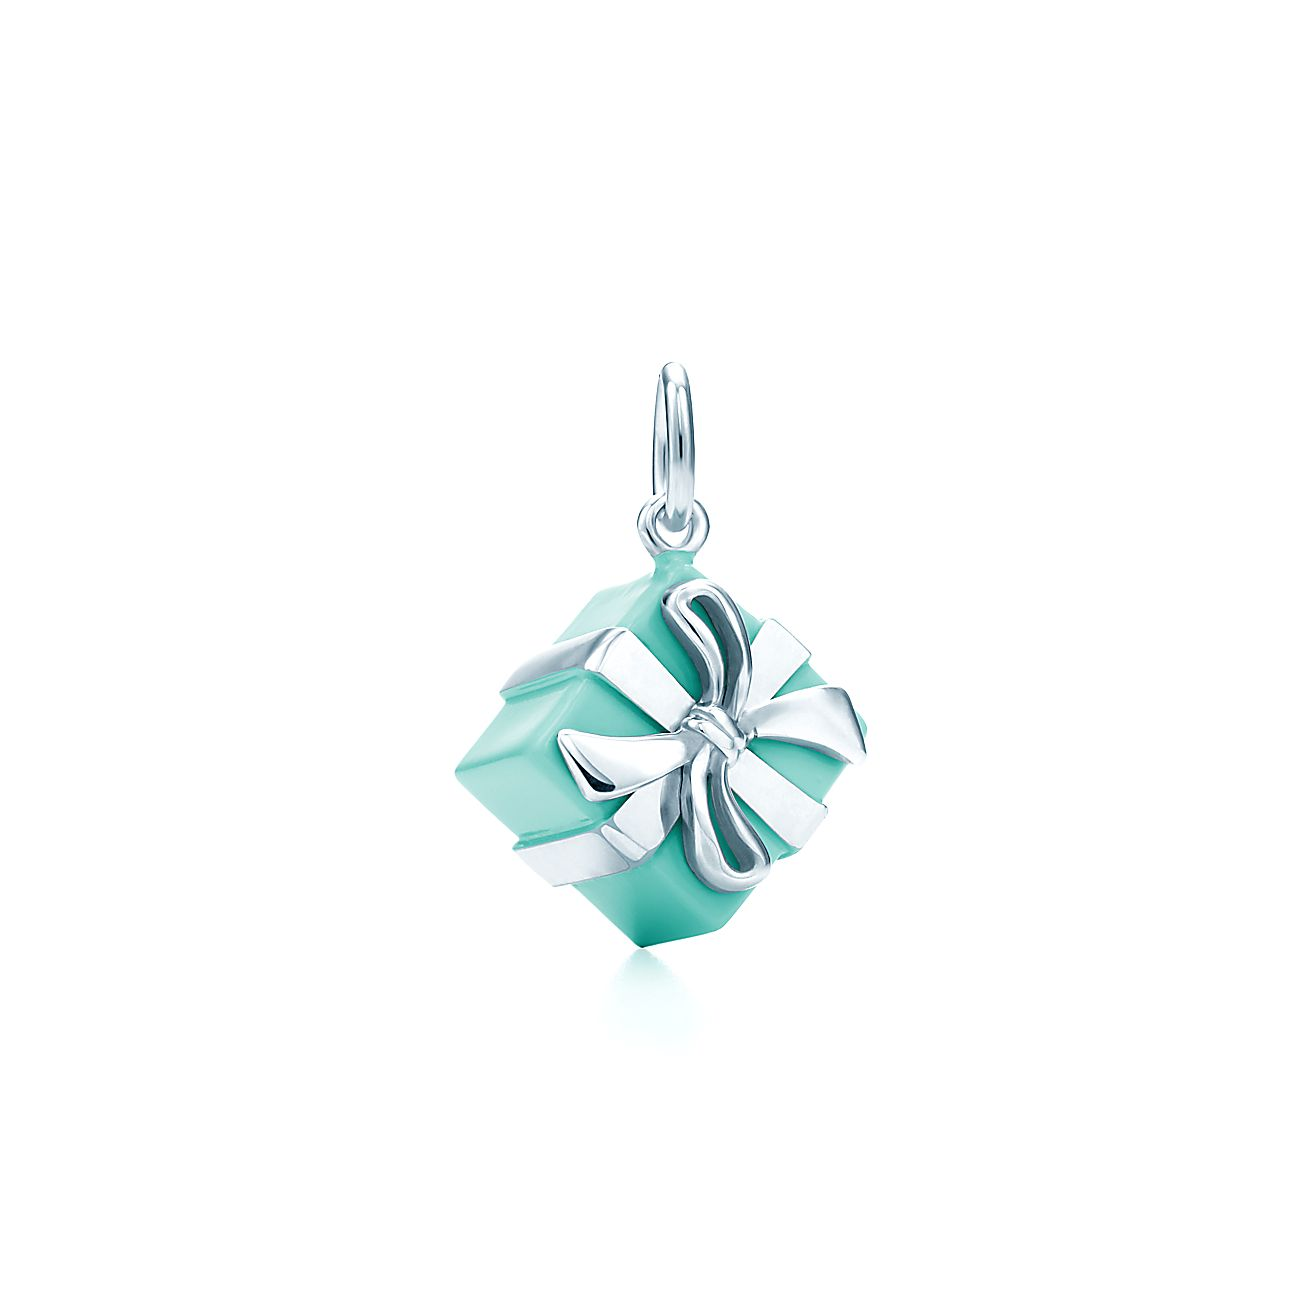 tiffany blue box charm in sterling silver with tiffany. Black Bedroom Furniture Sets. Home Design Ideas